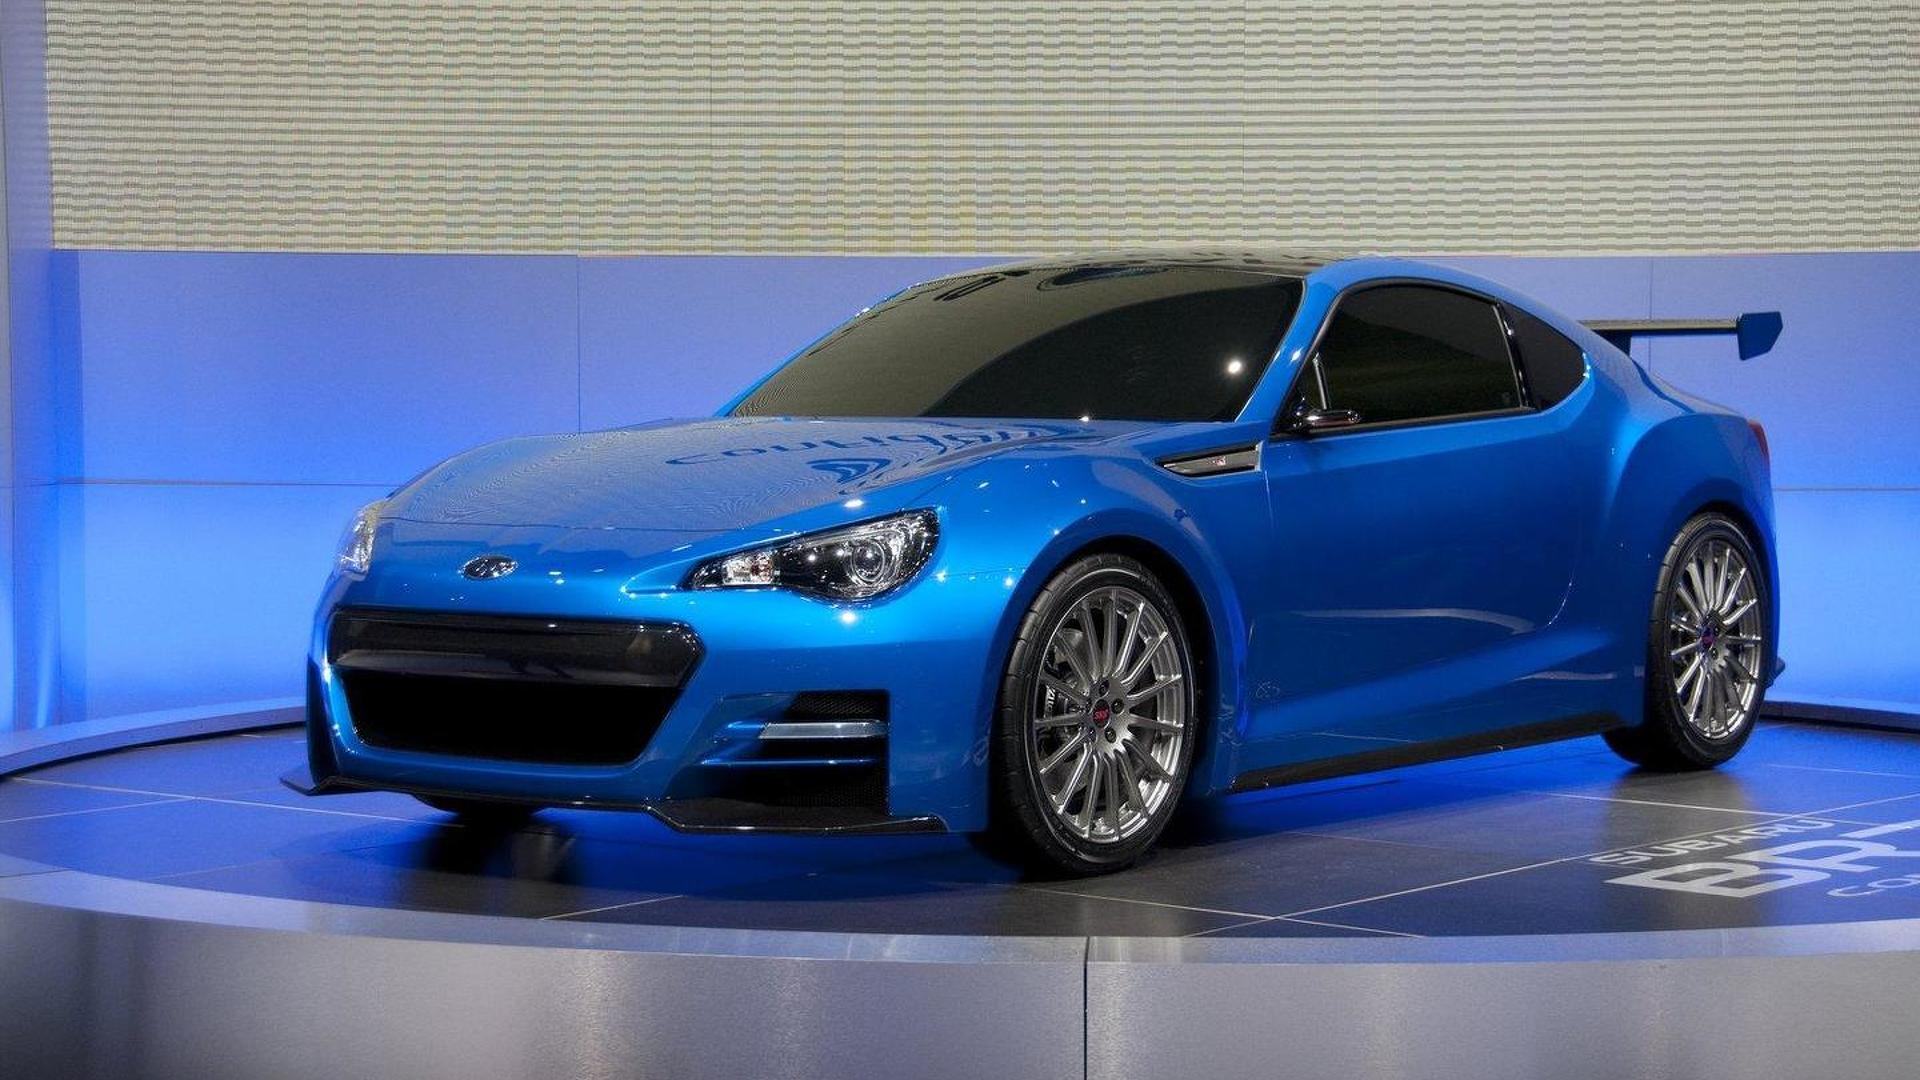 Subaru to boost U.S. production by 30 percent - report